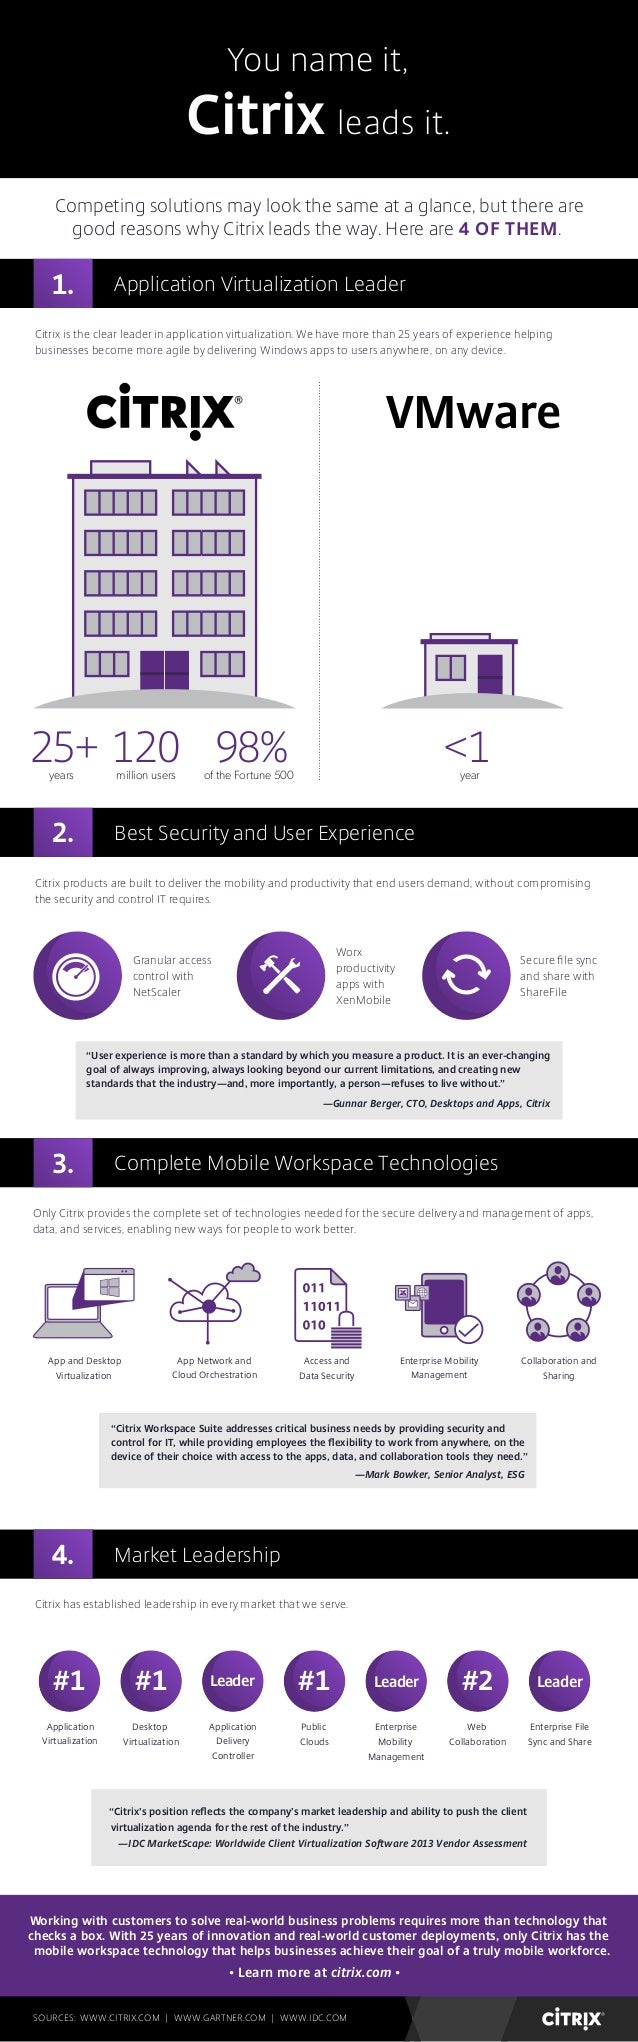 [INFOGRAPHIC] You Name It, Citrix Leads It